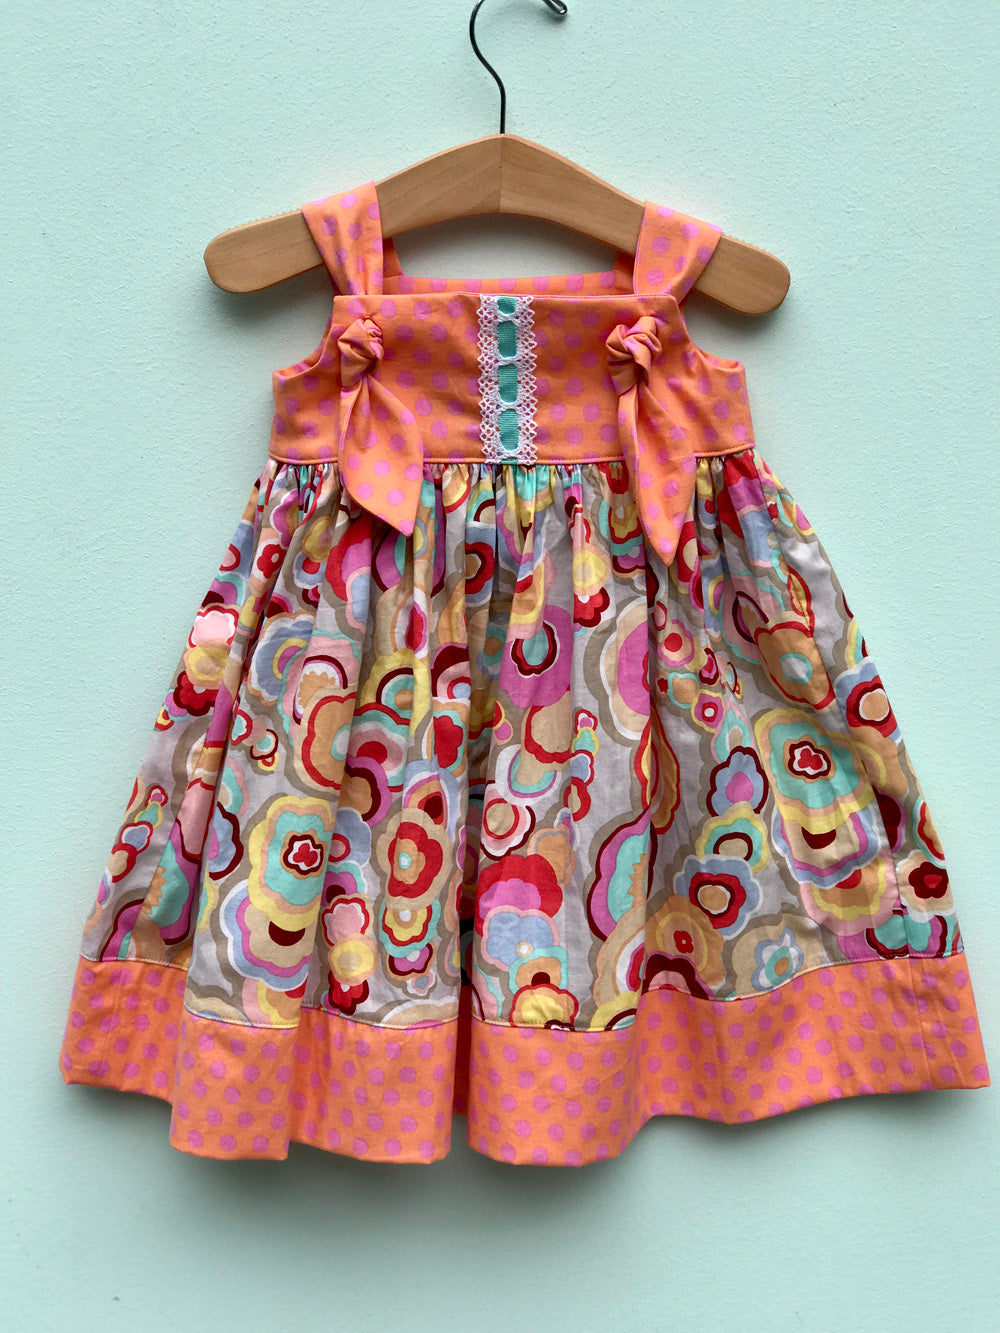 knot dress in peach and pink kite tails - little girl Pearl